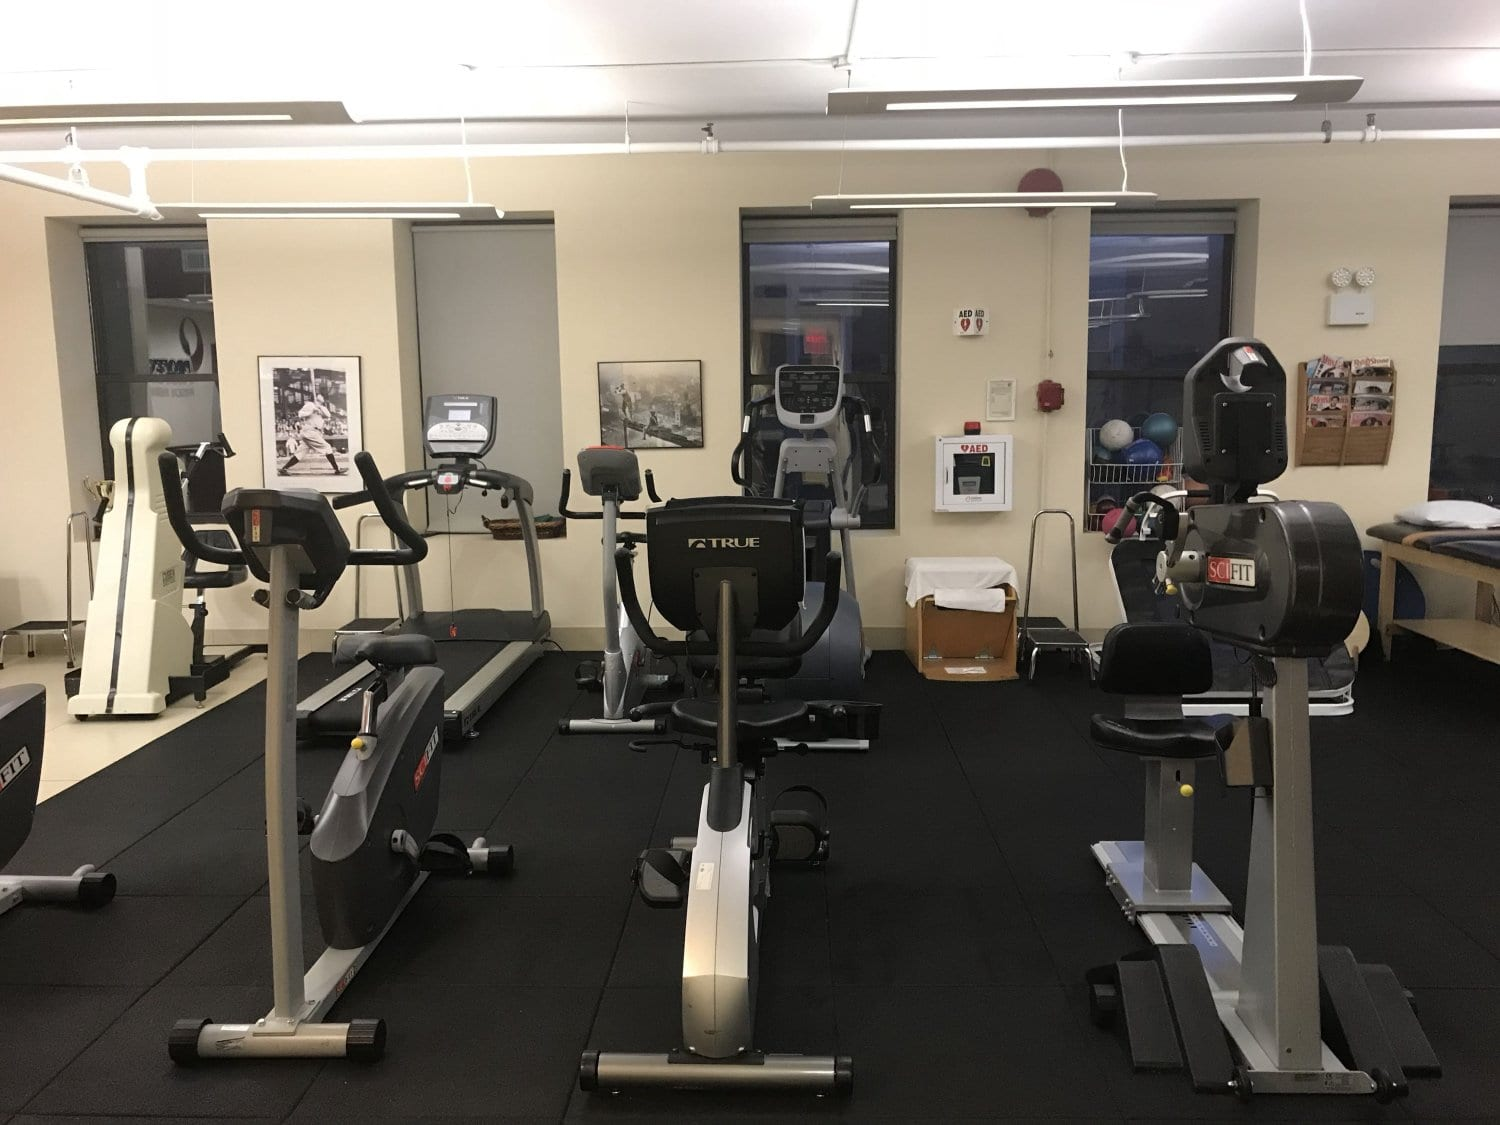 An image of bikes at our physical therapy clinic in Manhattan, New York City, at Upper East Side on 84th st.